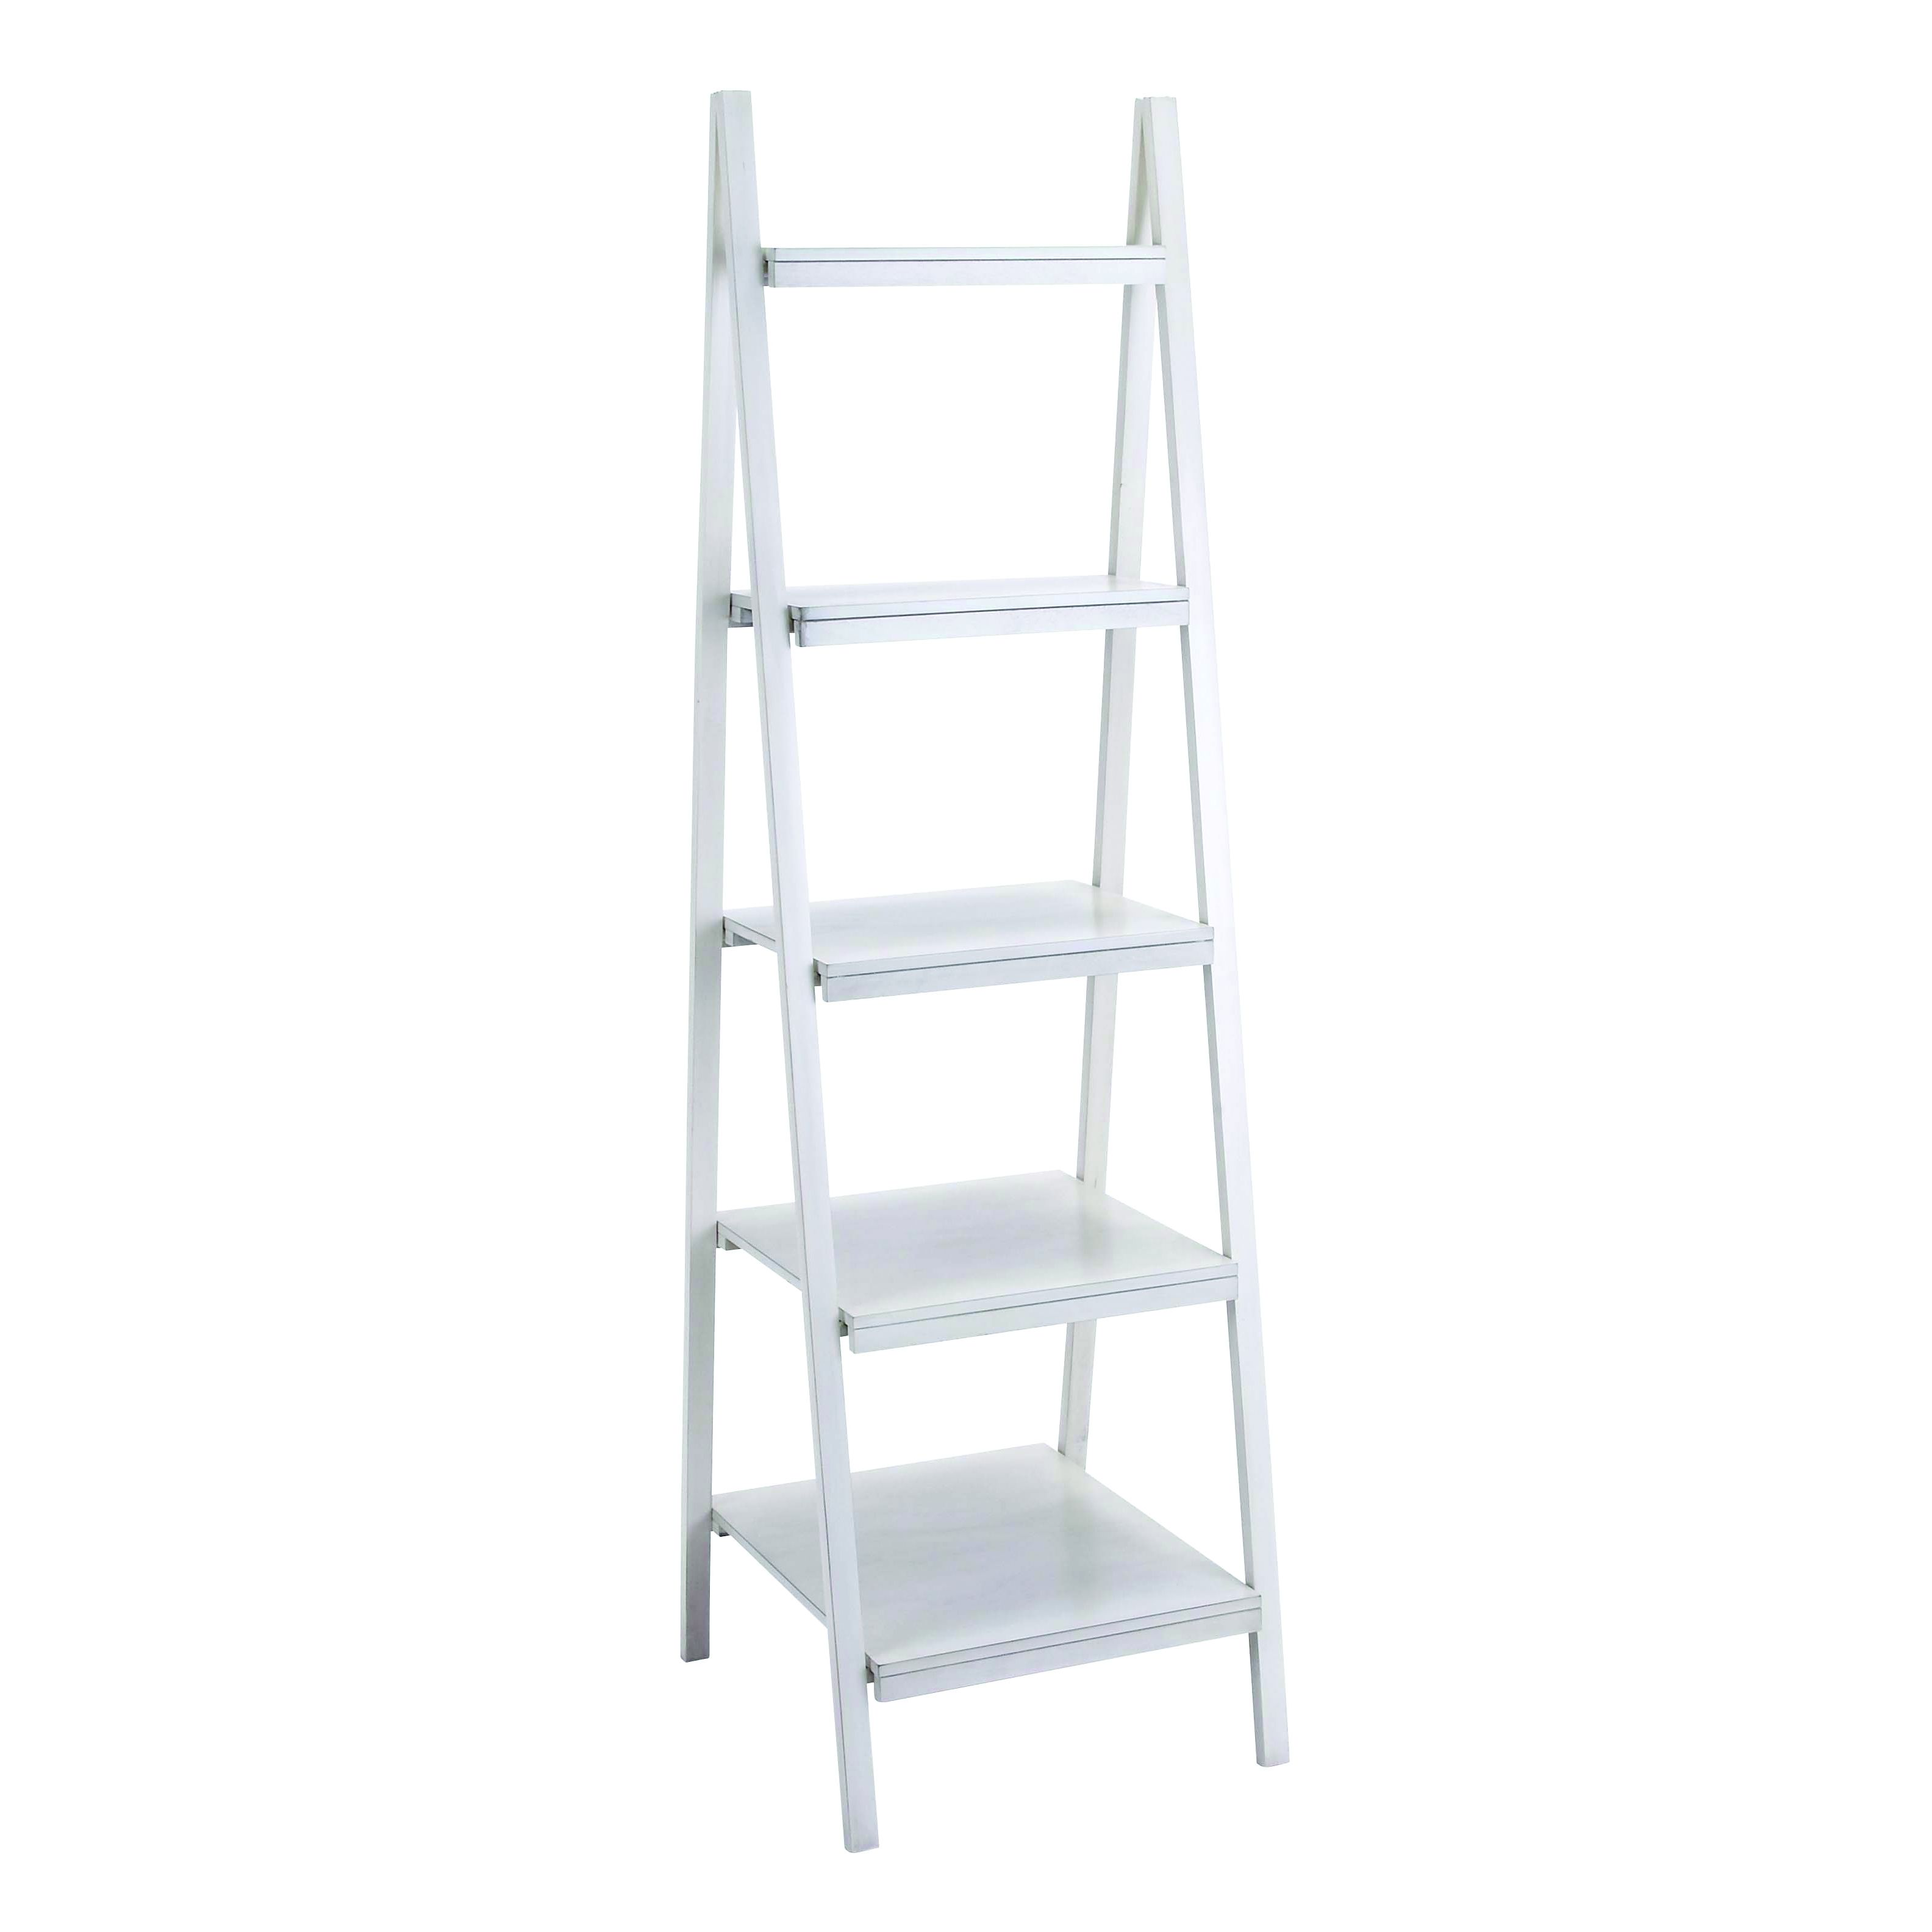 White leaning shelf products pinterest leaning shelves and